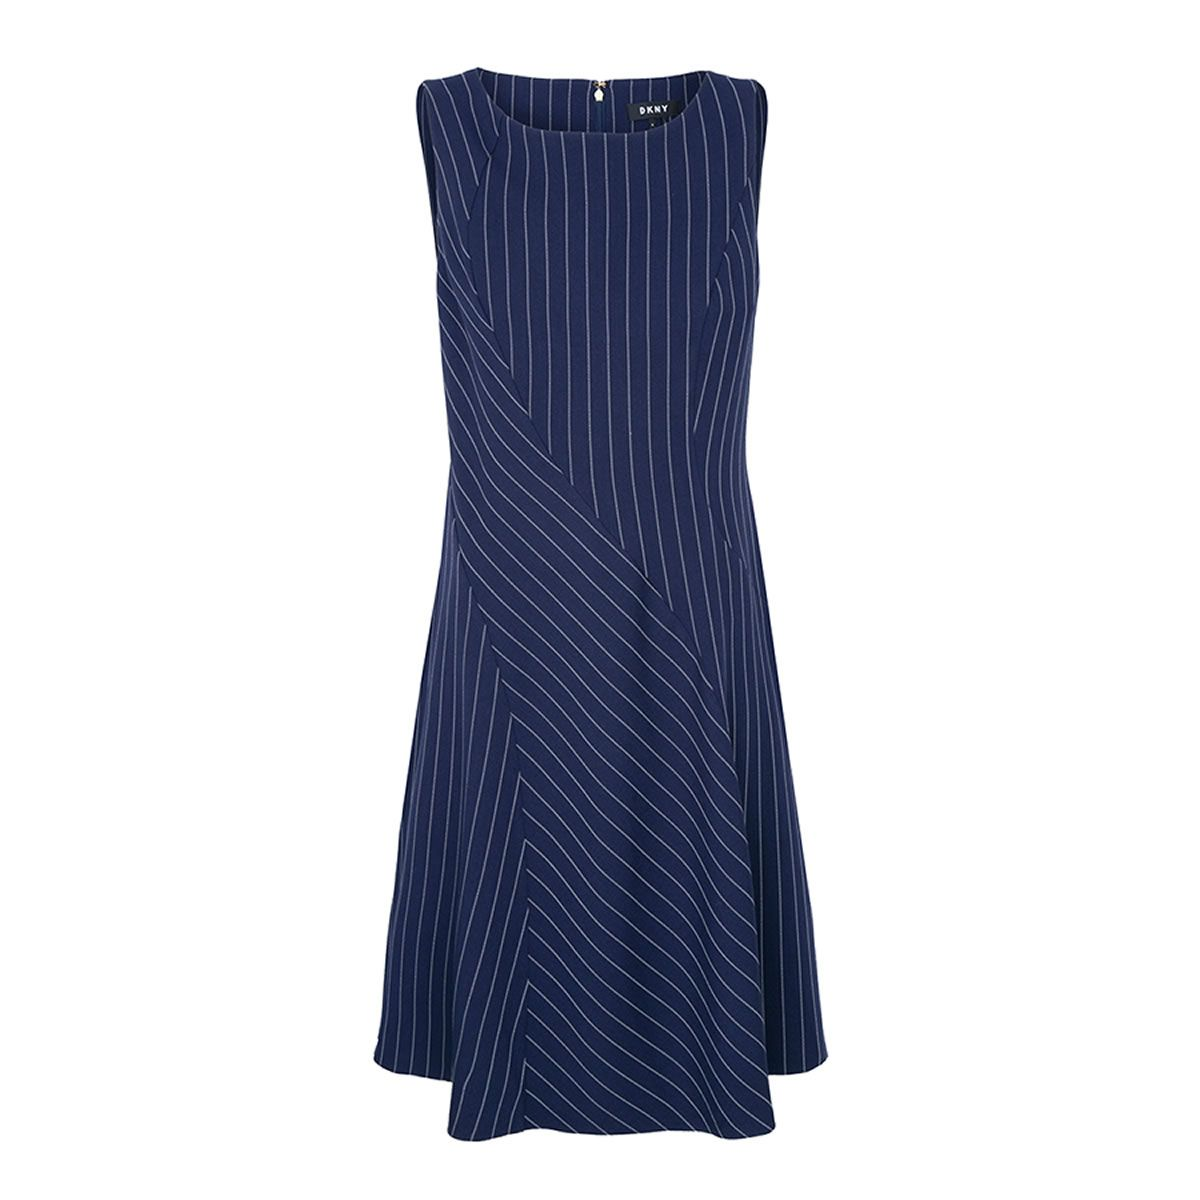 fbe17edbef1 DKNY Dresses for Women - Macy s